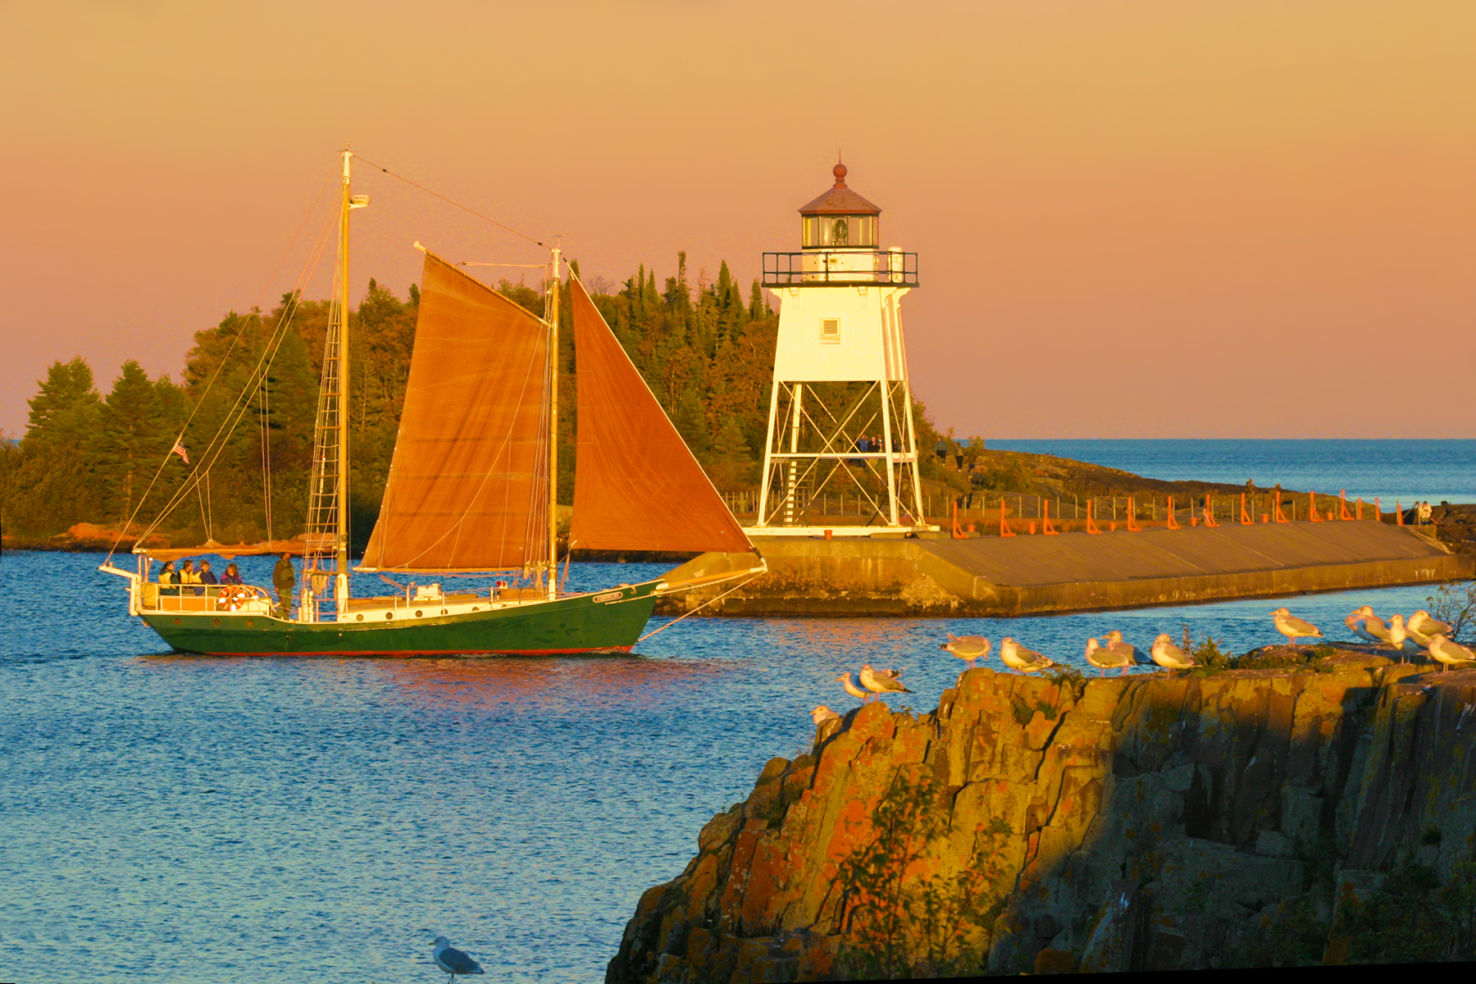 North House Folk Schools sailboat, Hjordis, leaving the harbor in Grand Marais, MN